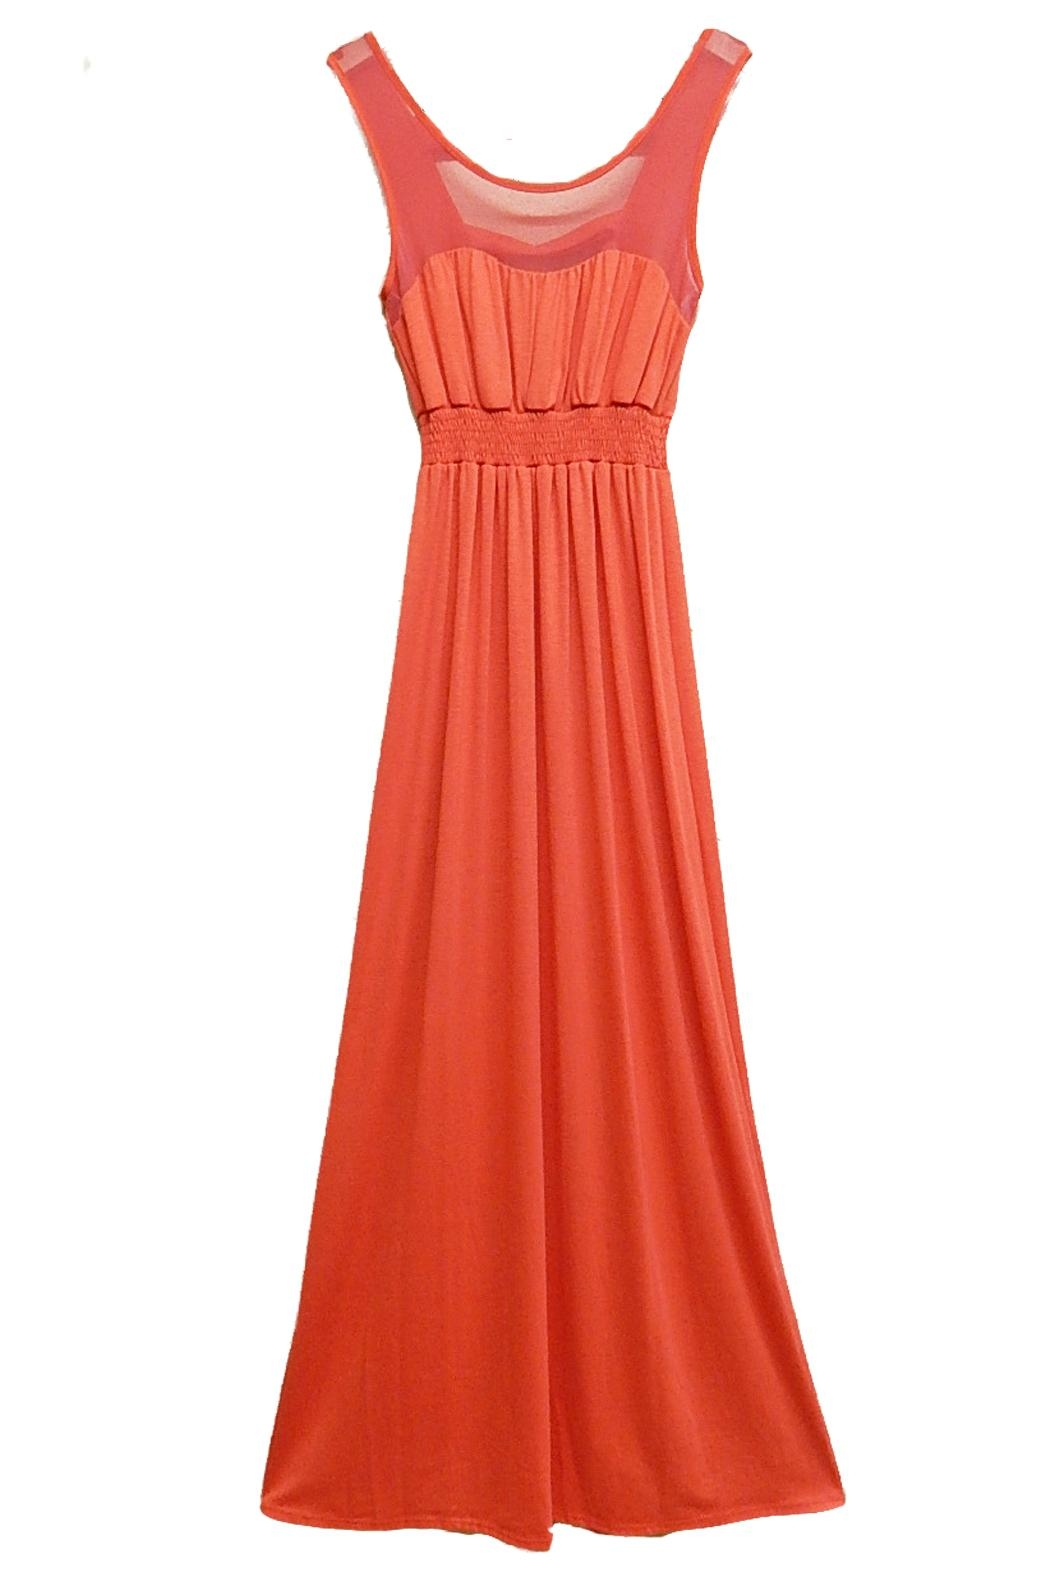 Paper Doll Coral Maxi Dress - Front Cropped Image